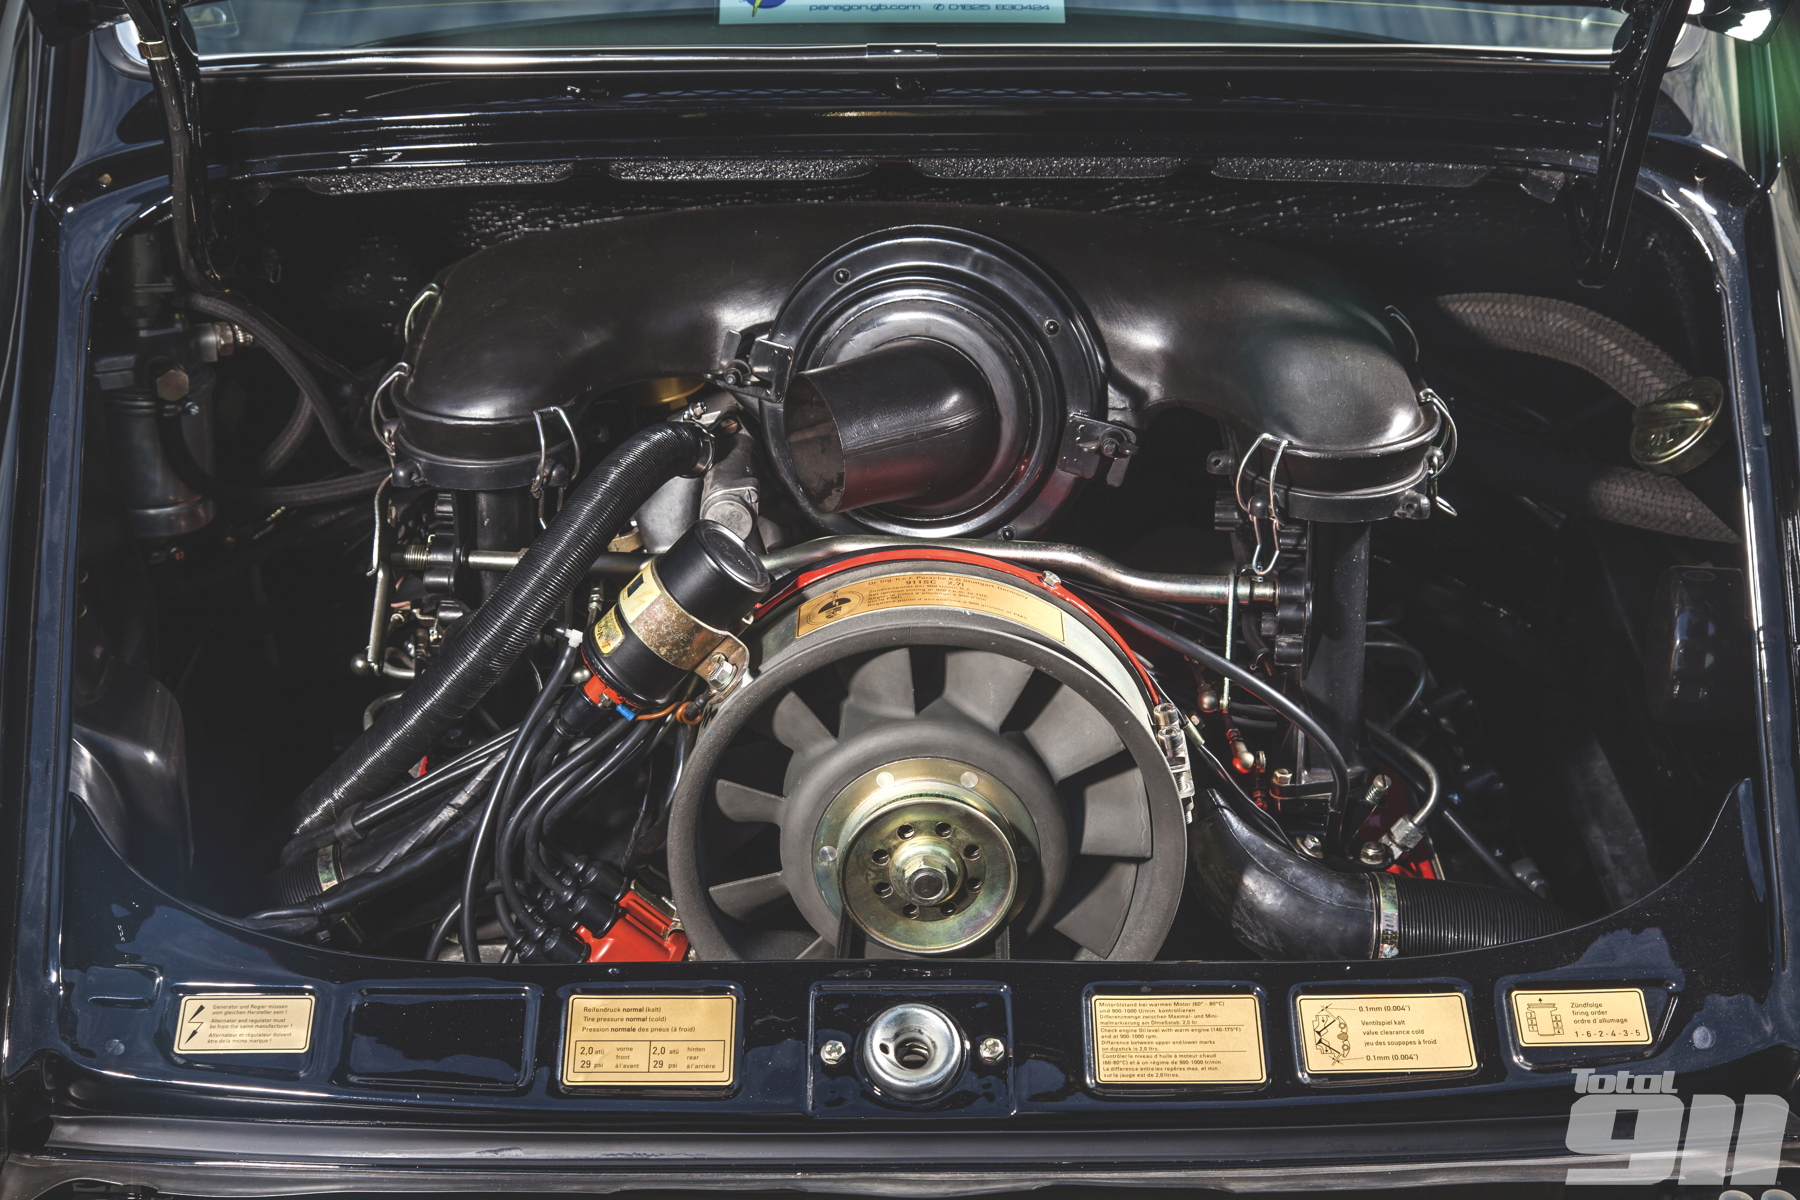 2.7 RS engine